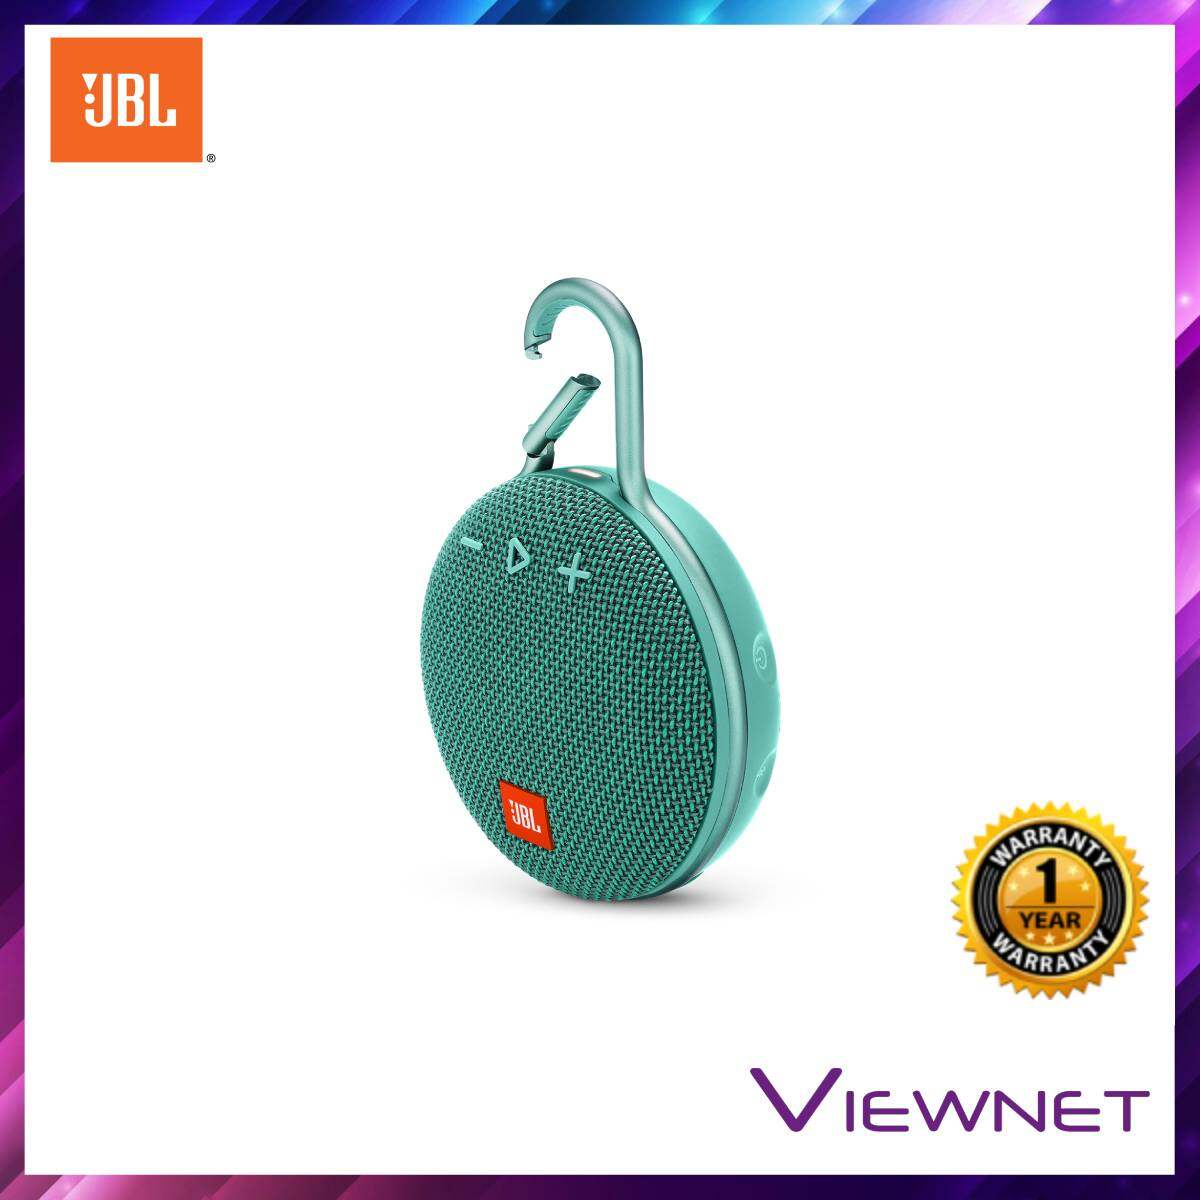 JBL Clip 3 Portable Bluetooth Speaker with 10 hours playtime, IPX7 Waterproof, Intergrated carabiner